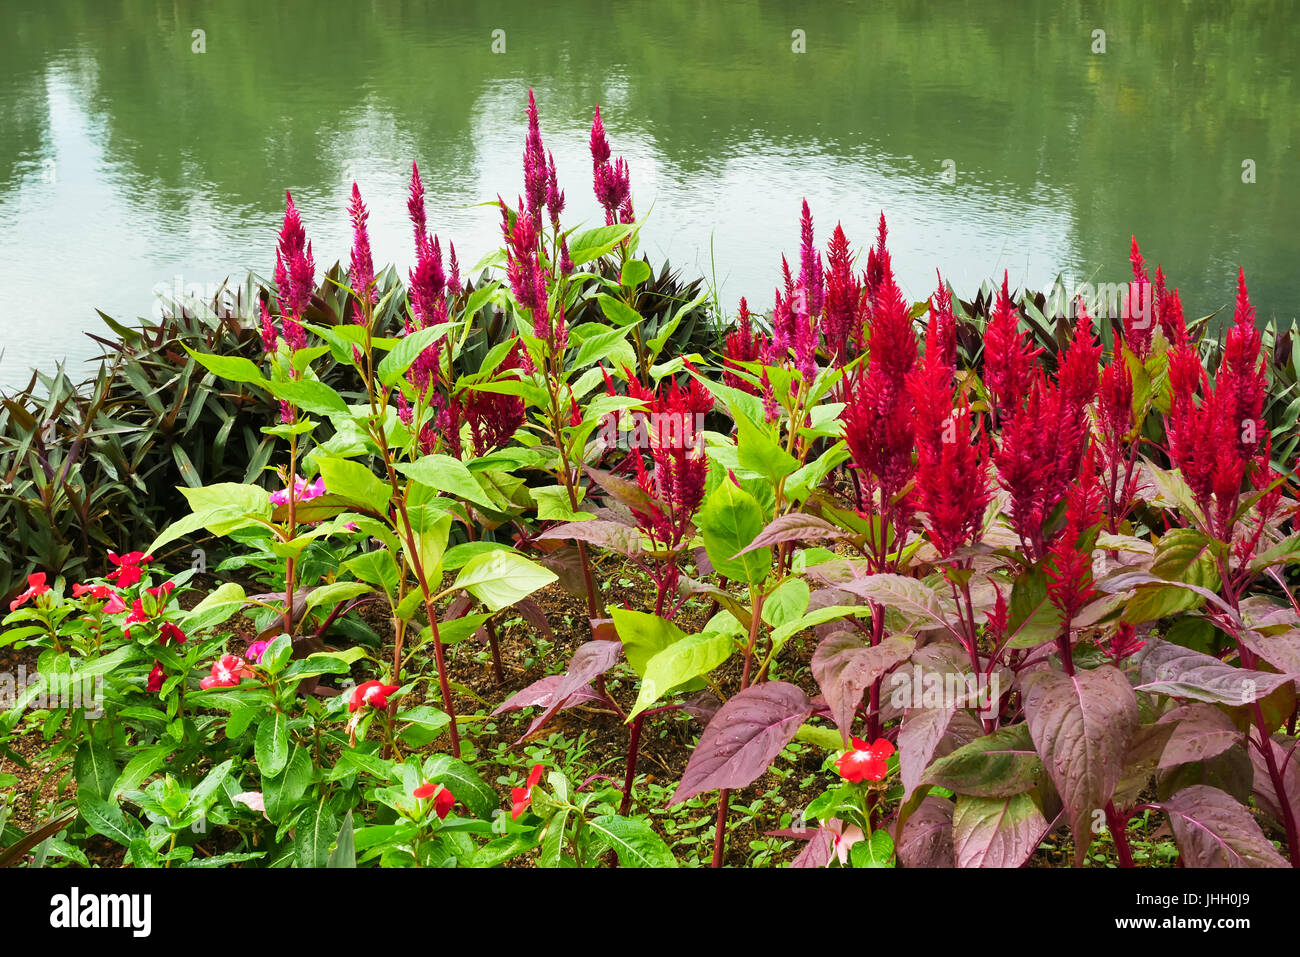 Beautiful Celosia Argentea flowers blossom in the garden. It also known as Red plumed cockscomb flowers. - Stock Image